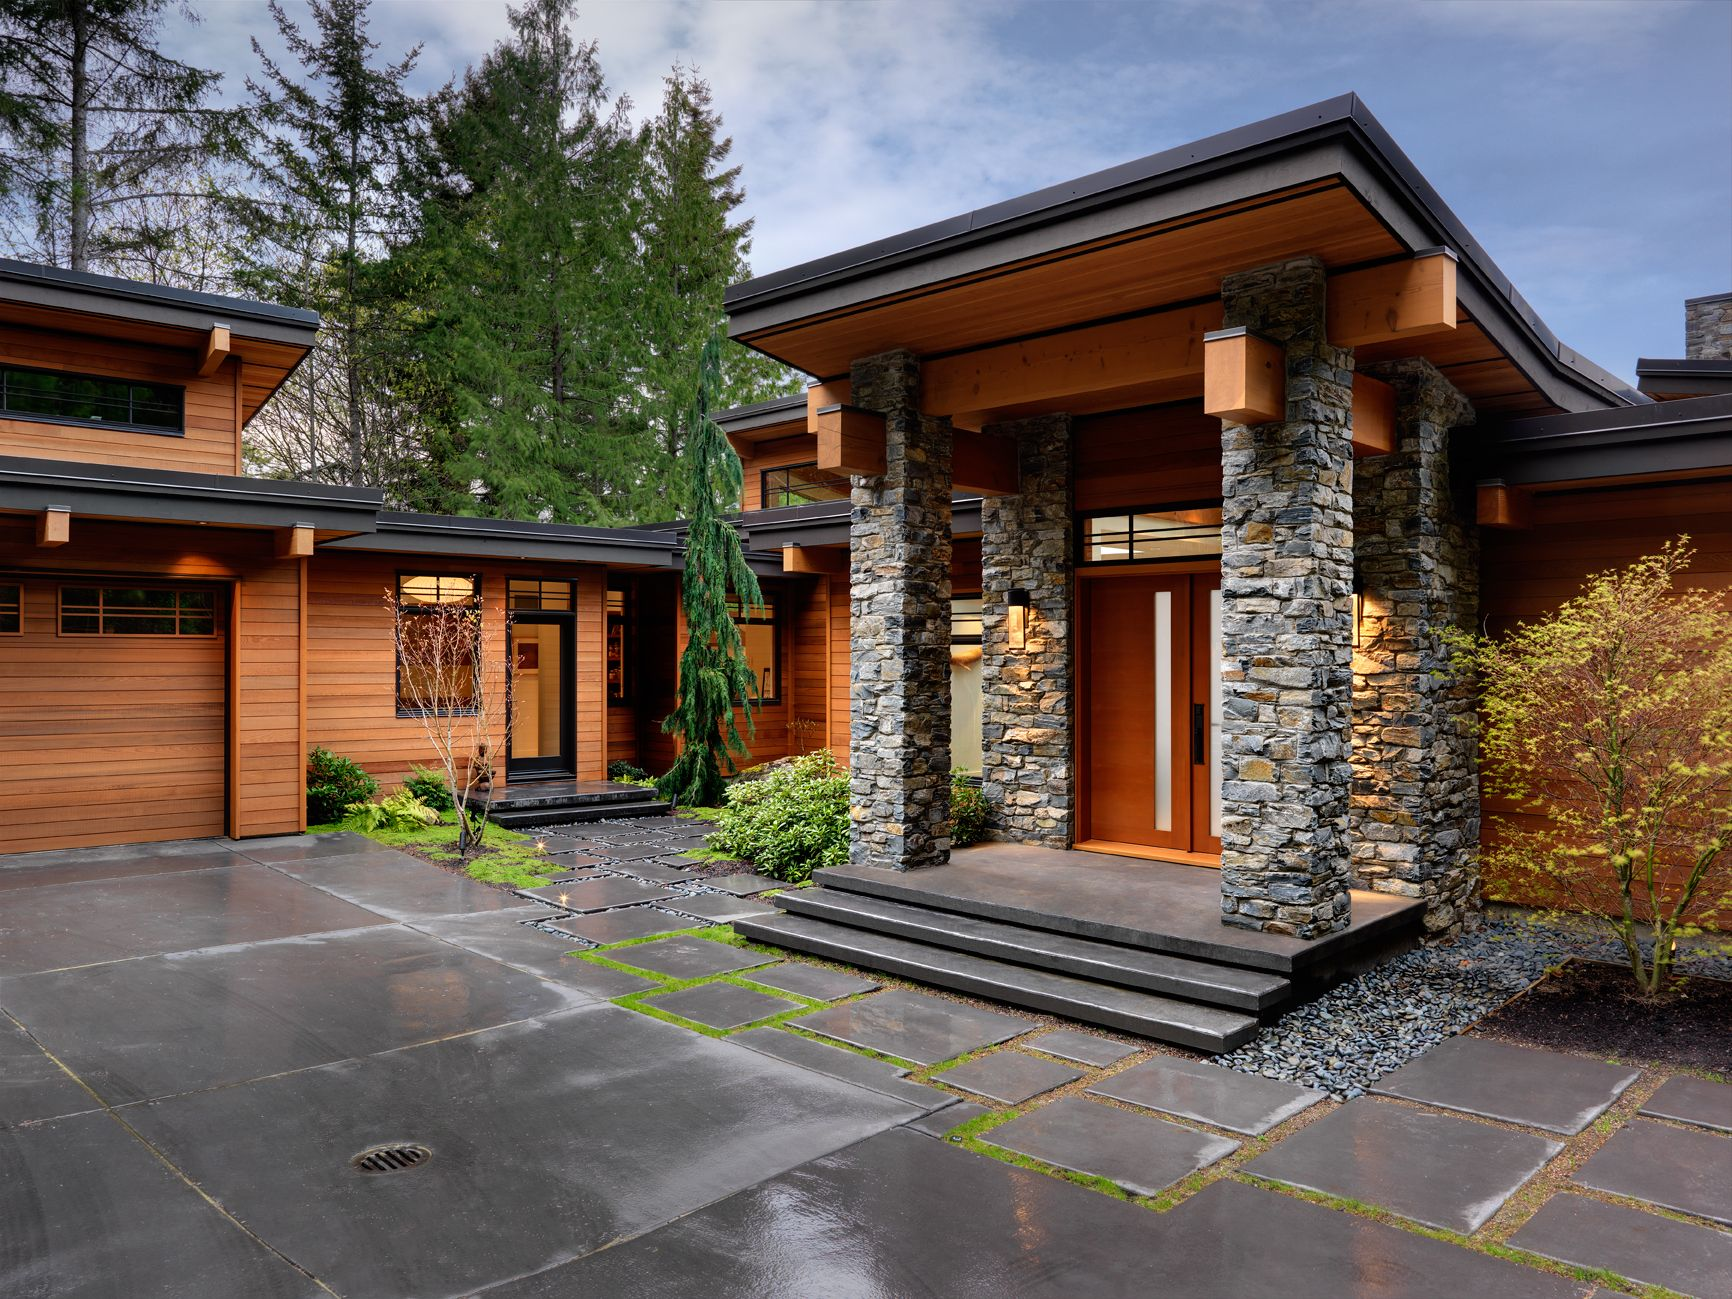 Stone Home Designs: Amazing Interior Woodwork Contemporary Yet Warm